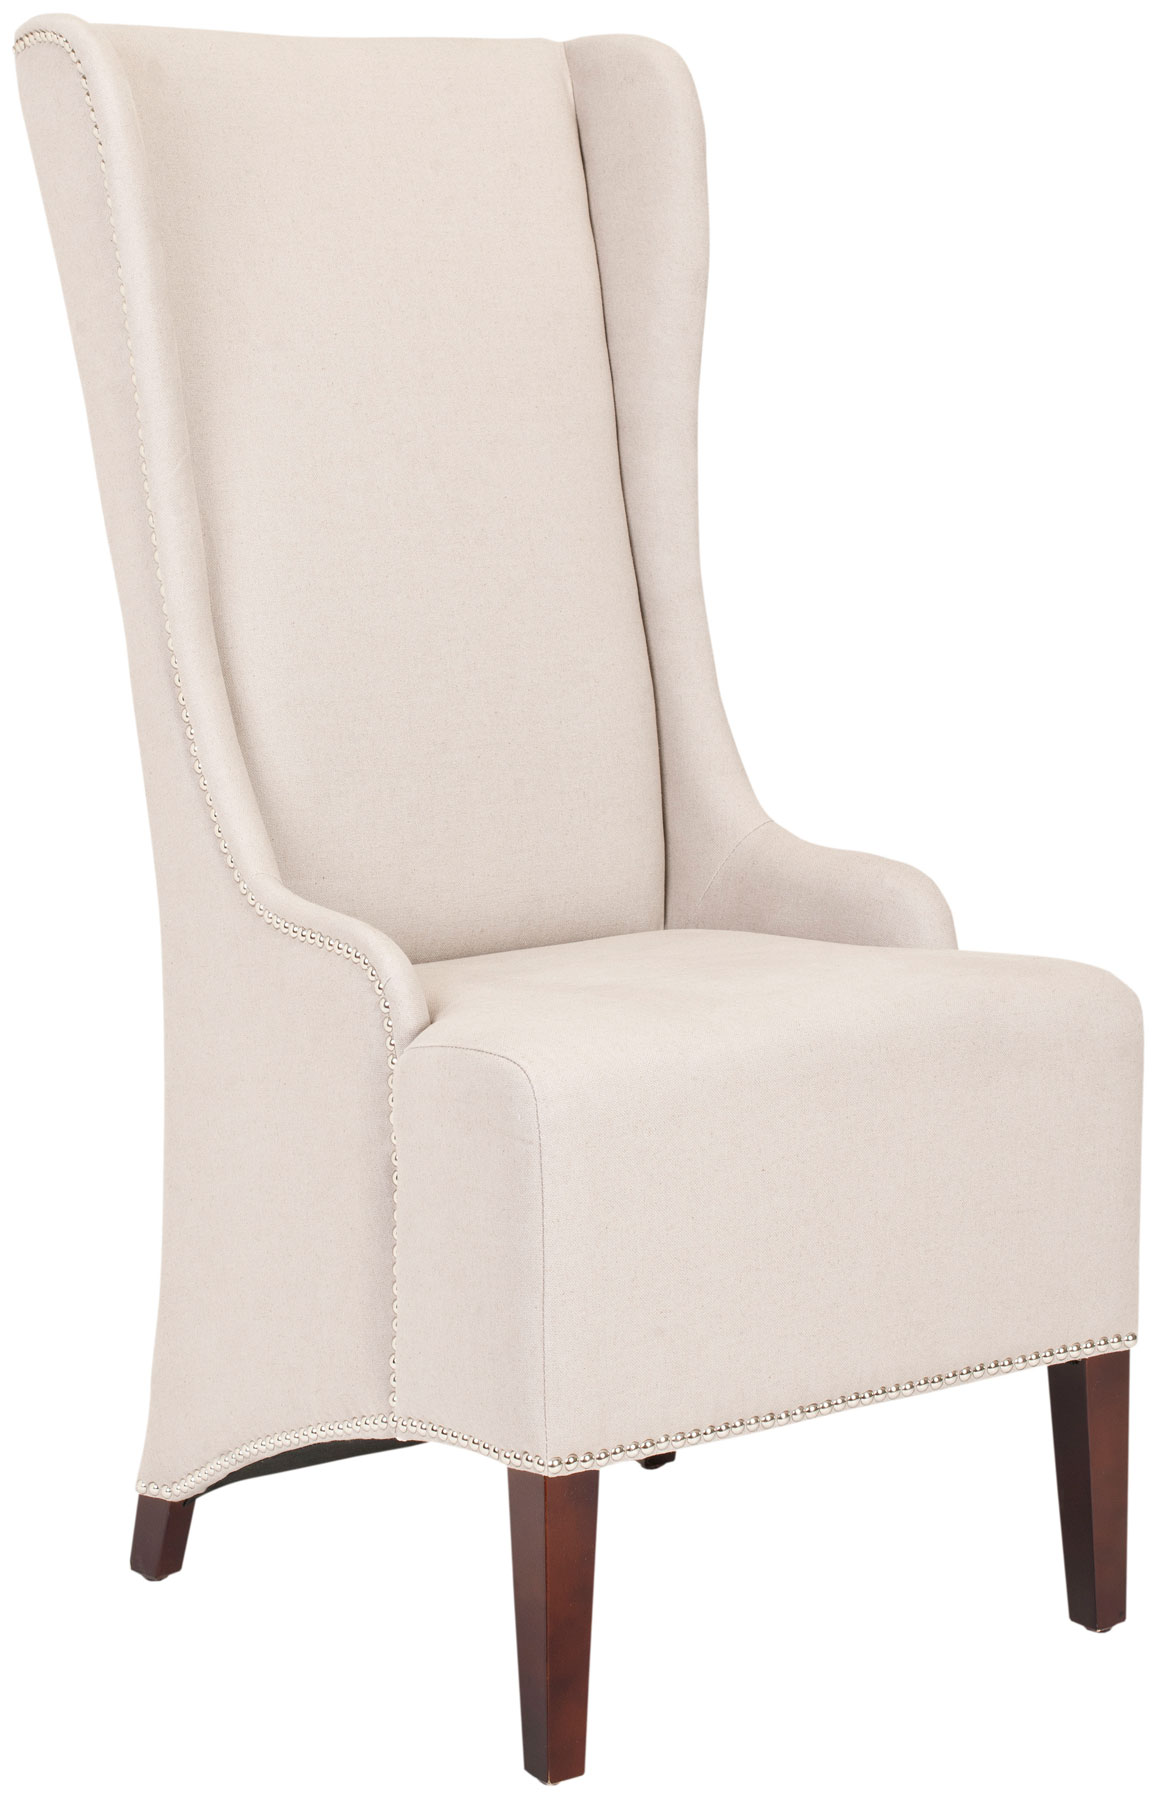 mcr4501f dining chairs furniture by safavieh. Black Bedroom Furniture Sets. Home Design Ideas